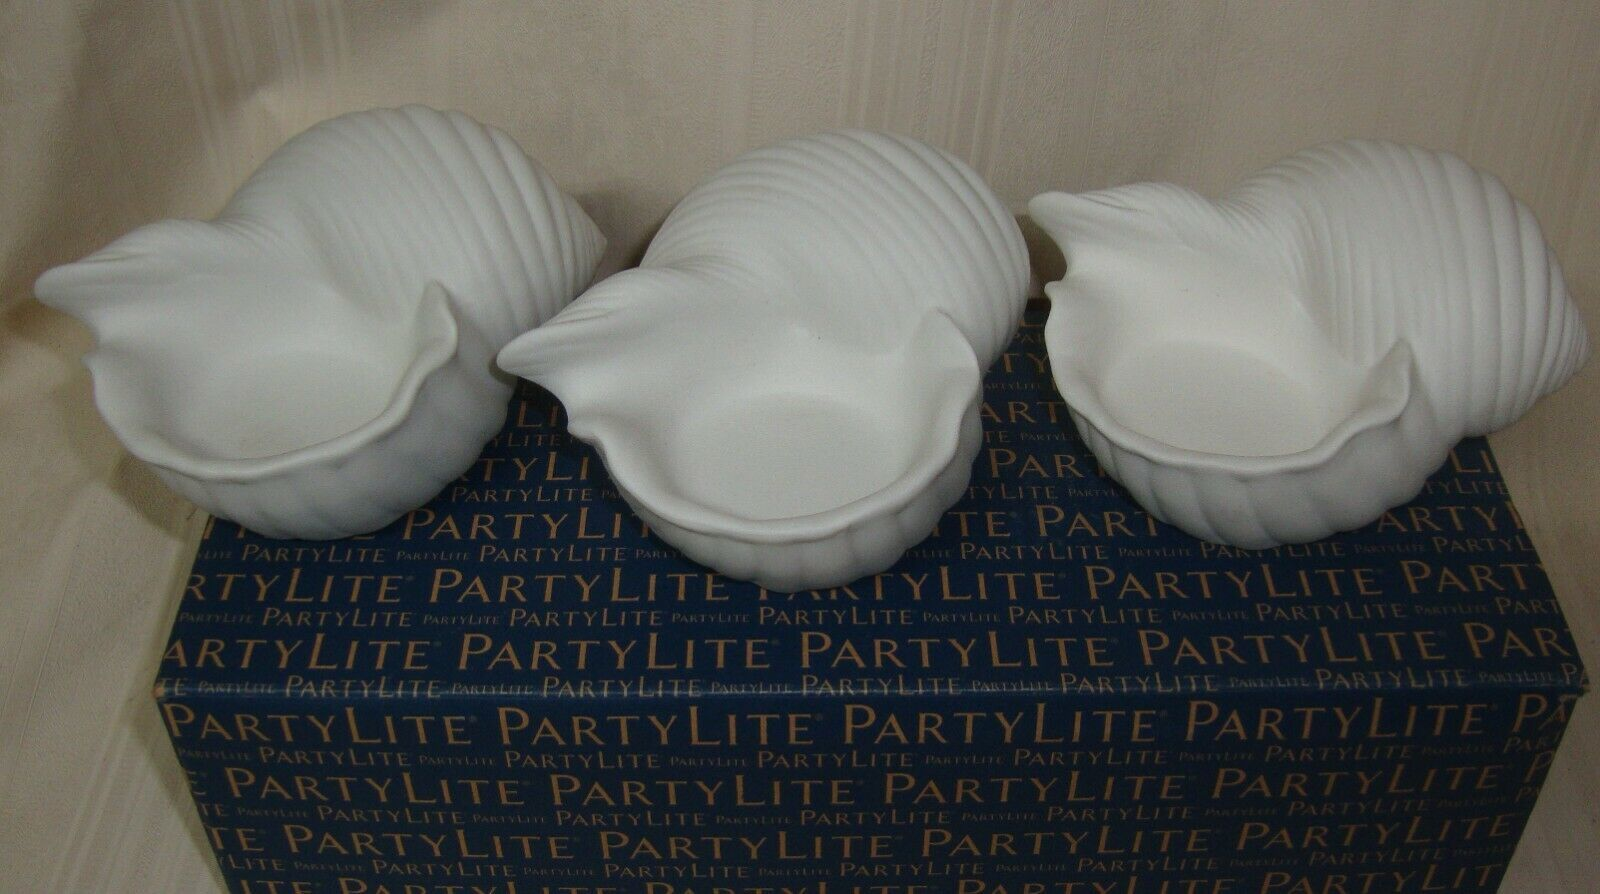 Primary image for PARTYLITE Conch Shell Tealight Trio Candle Holder NEW Great Gift 3 Candle Holder